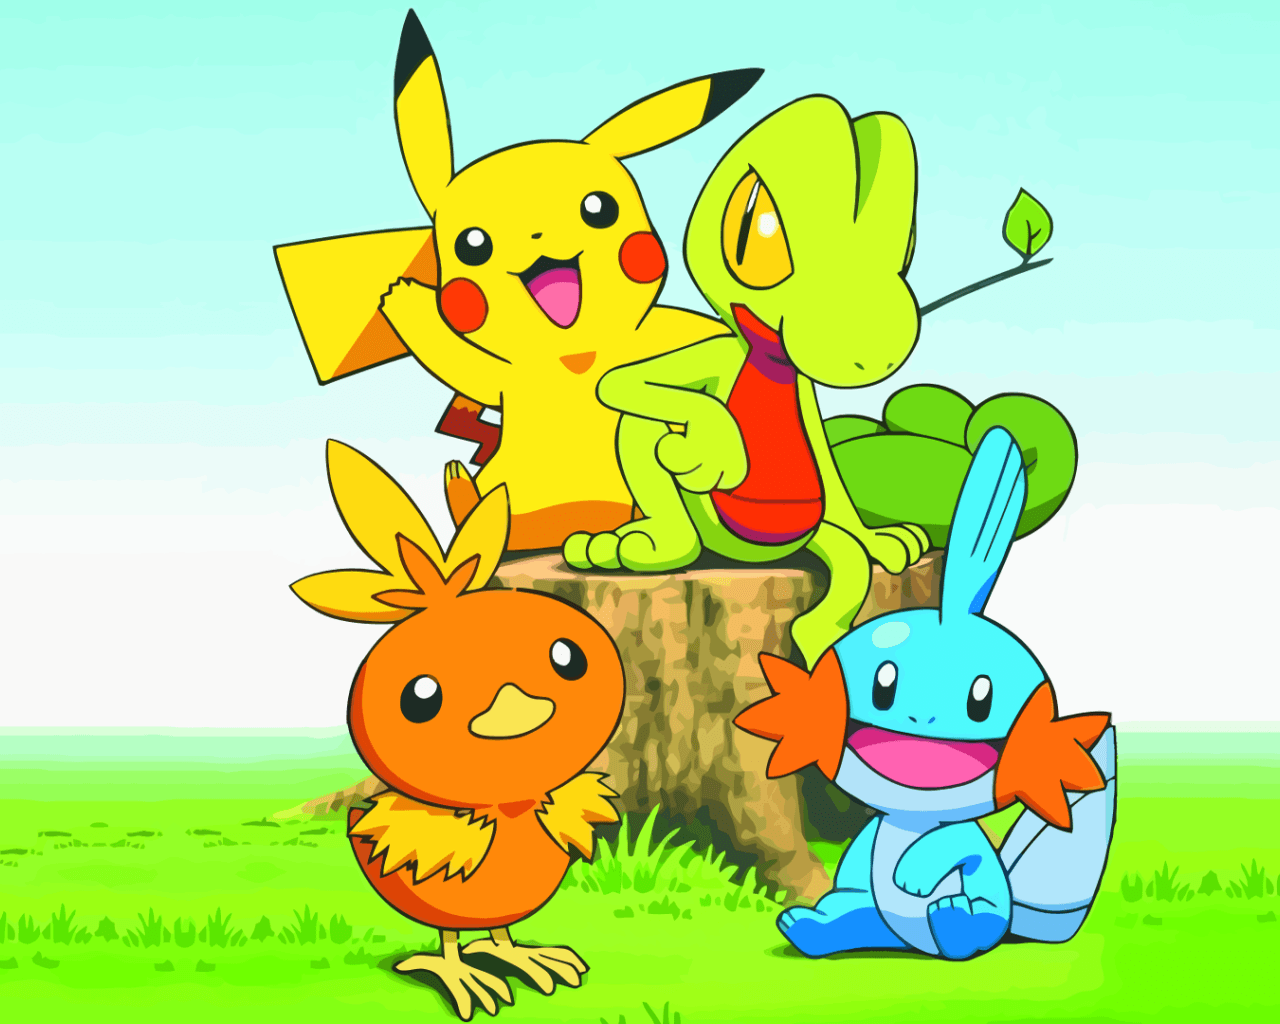 pikachu pokemon wallpaper - photo #8